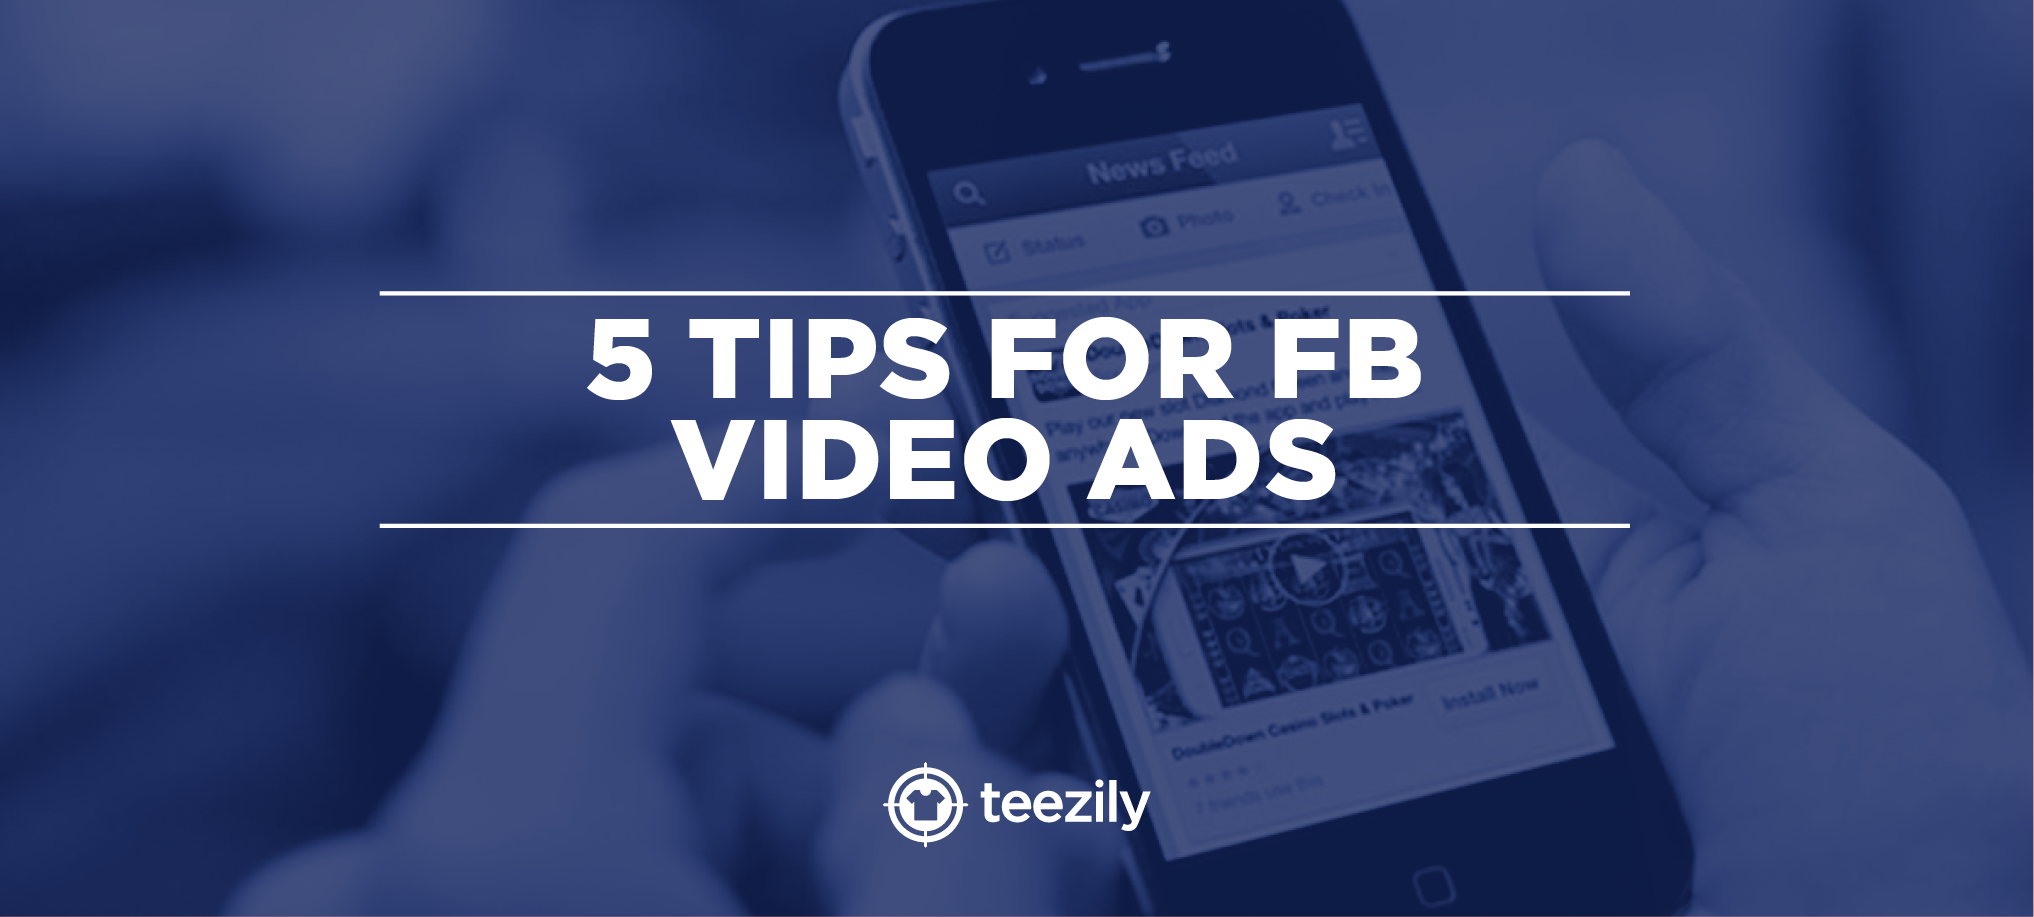 BANNER_5_tips_for_FB_video_ads_BLOG